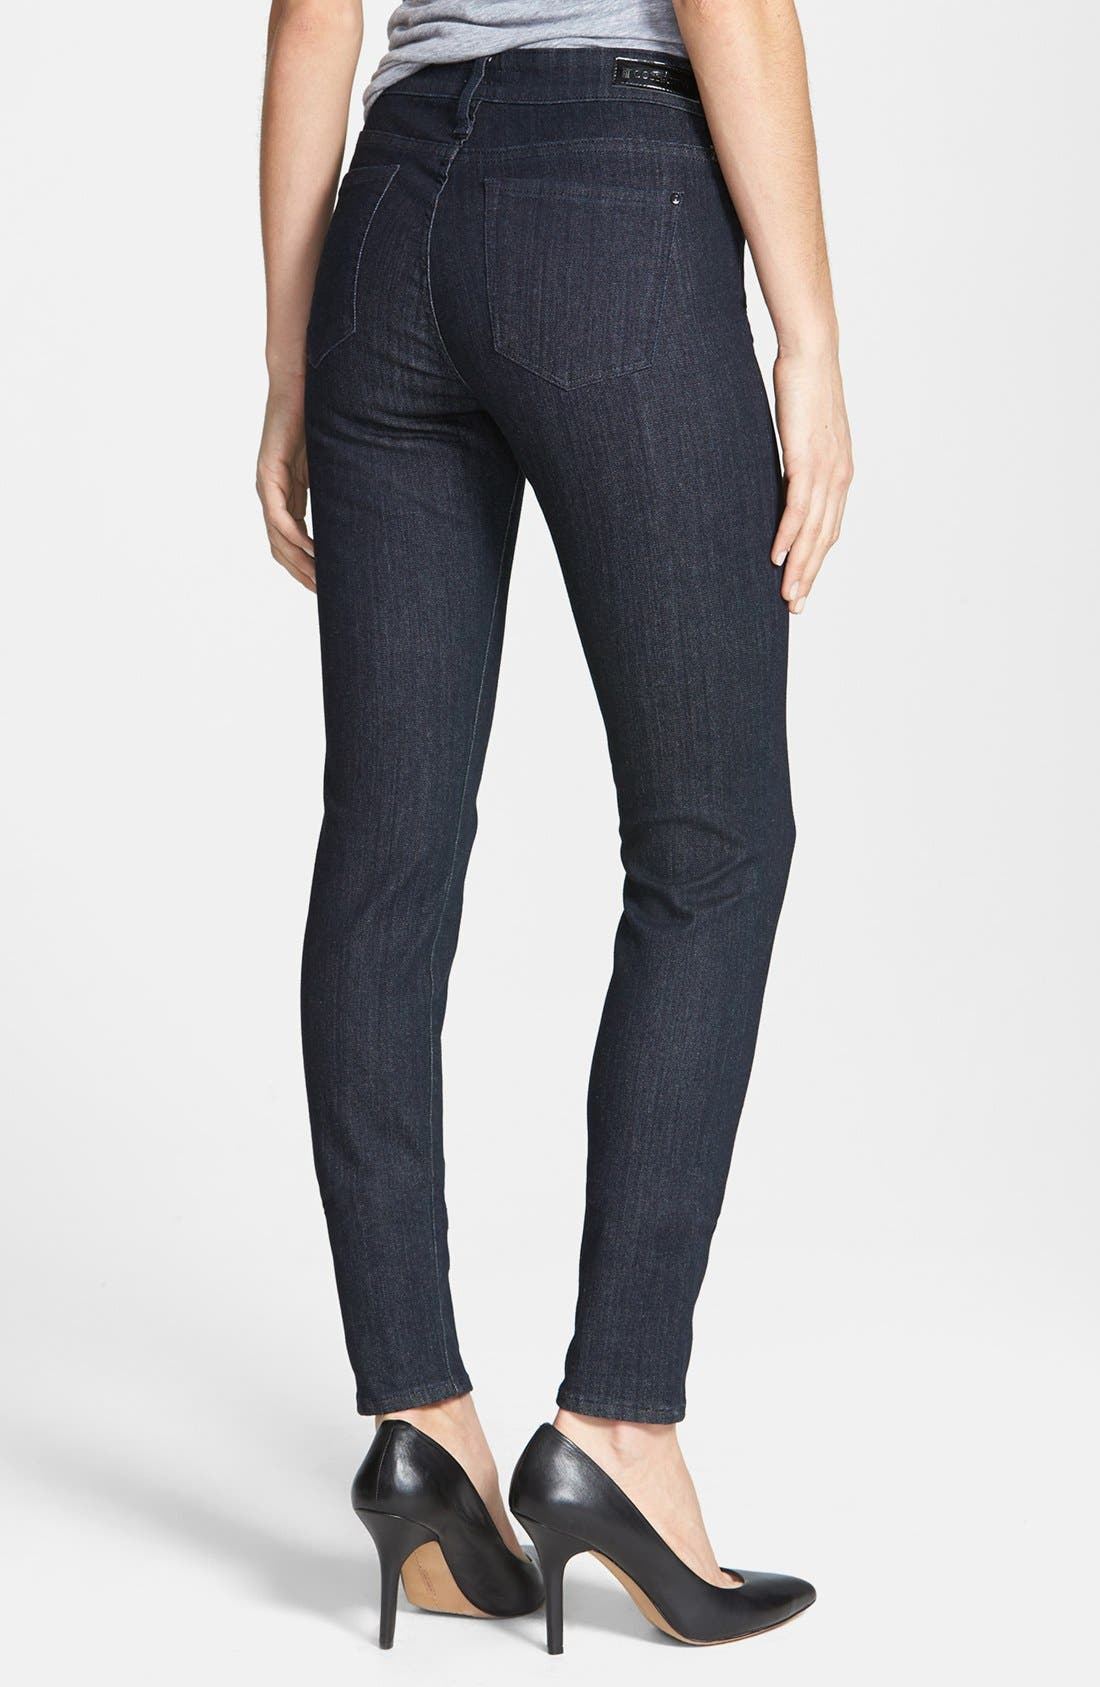 Alternate Image 2  - !iT Collective 'Lauren' Easy Skinny Jeans (Pure)